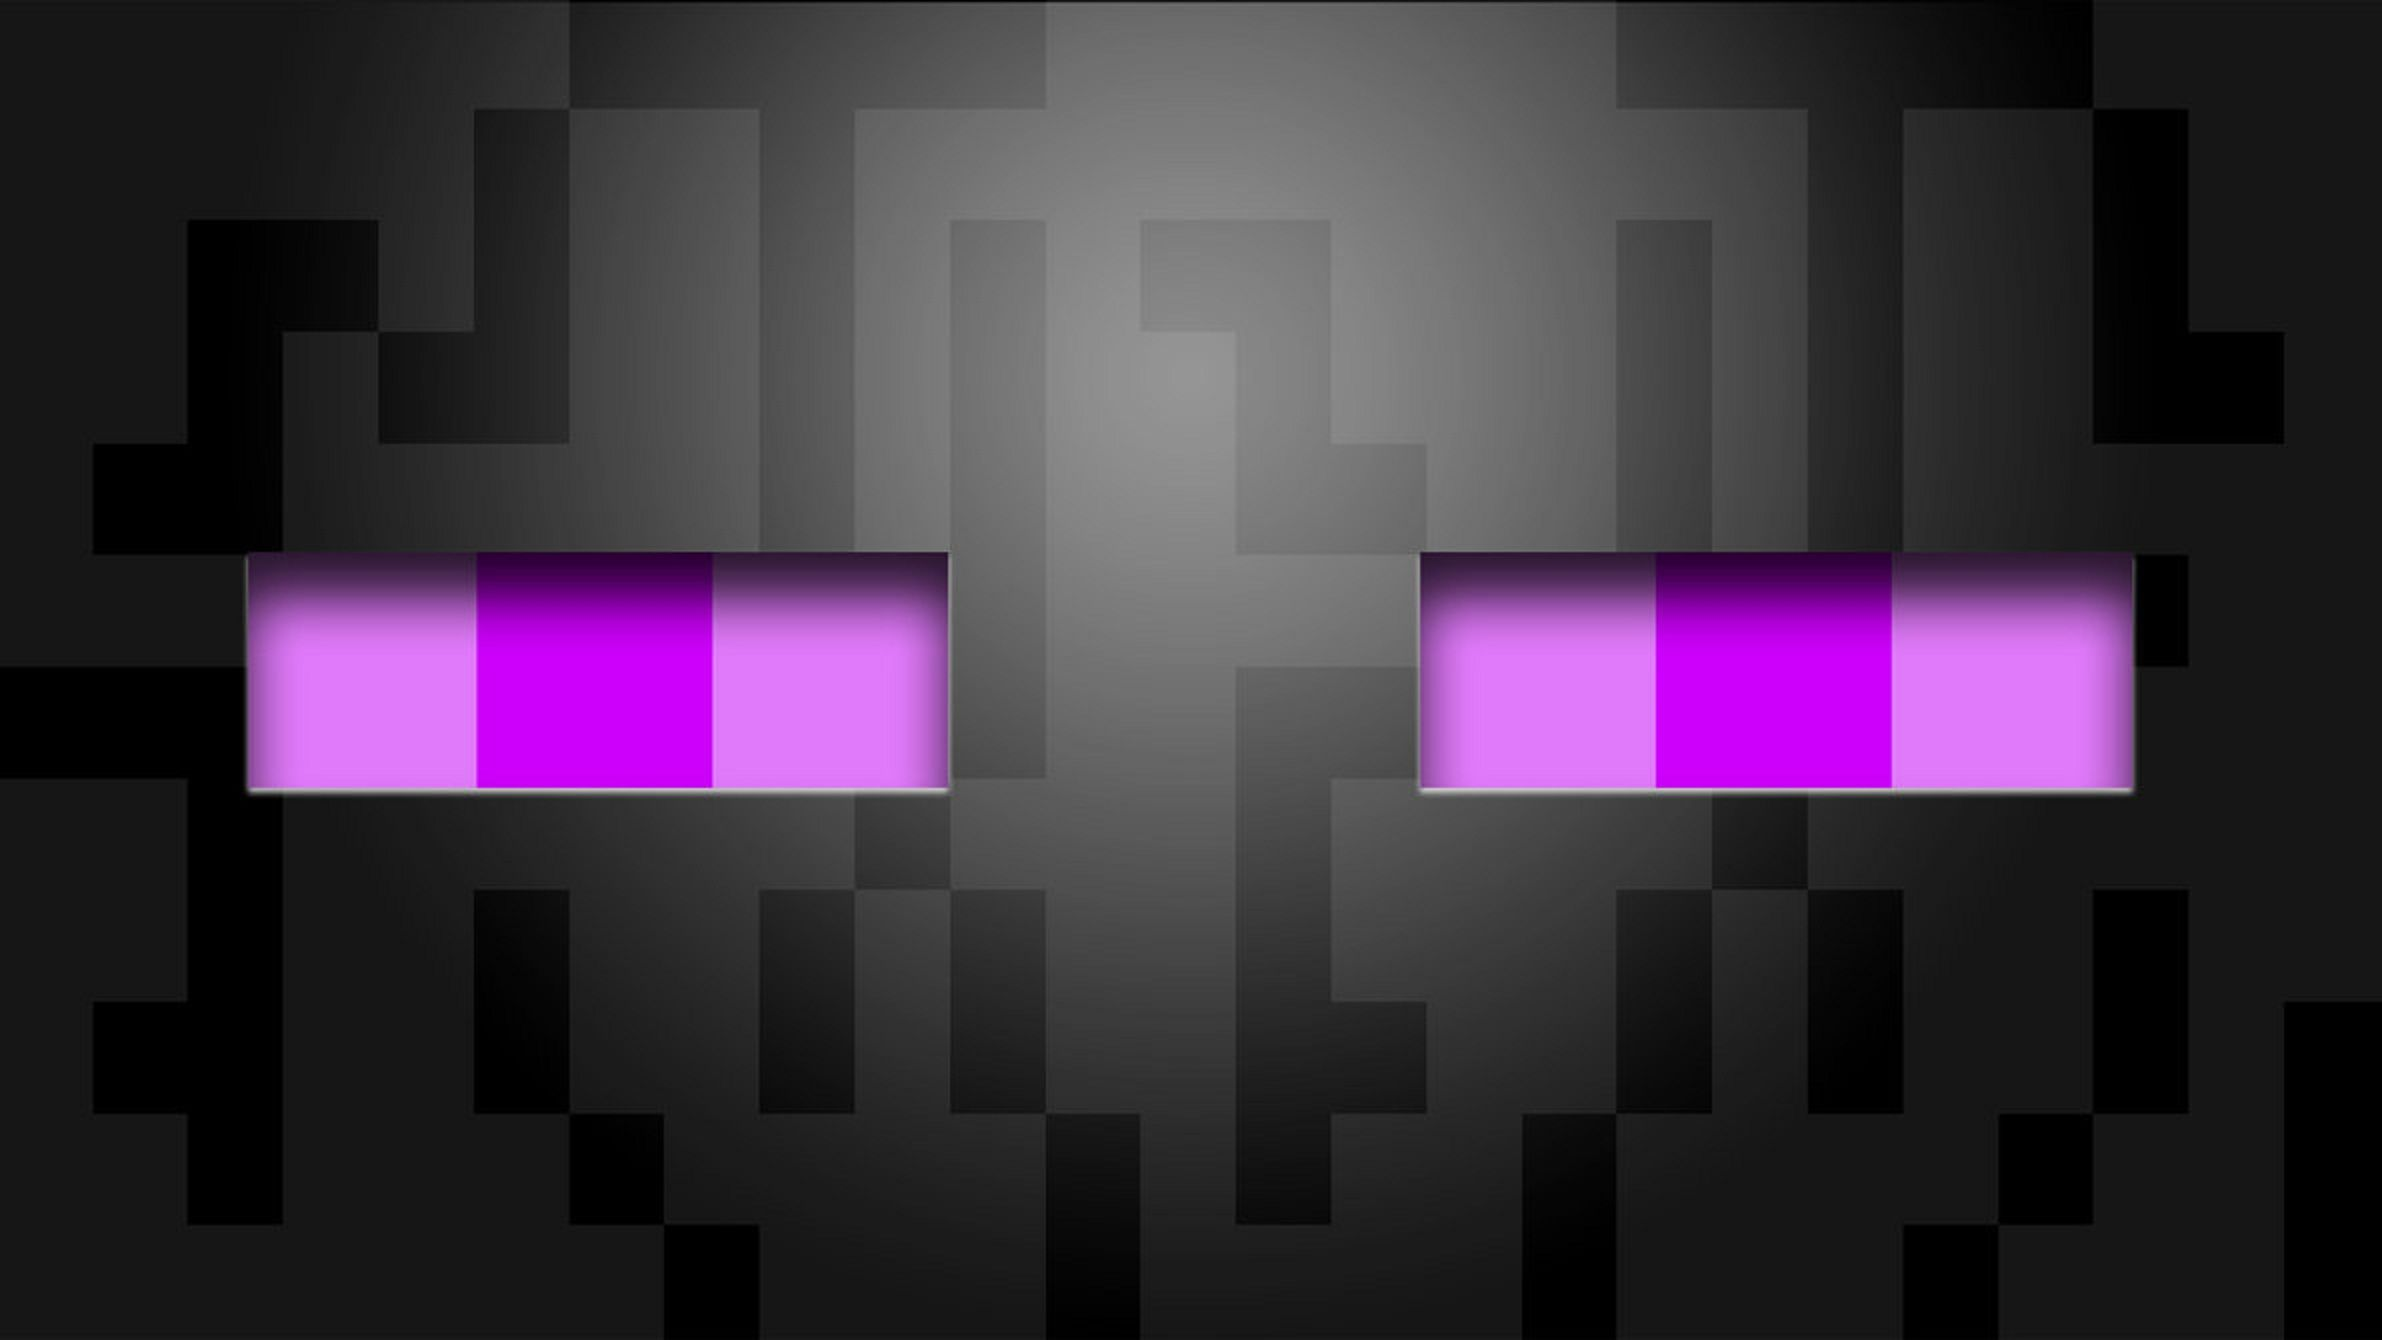 enderman minecraft wallpaper wolf - photo #9